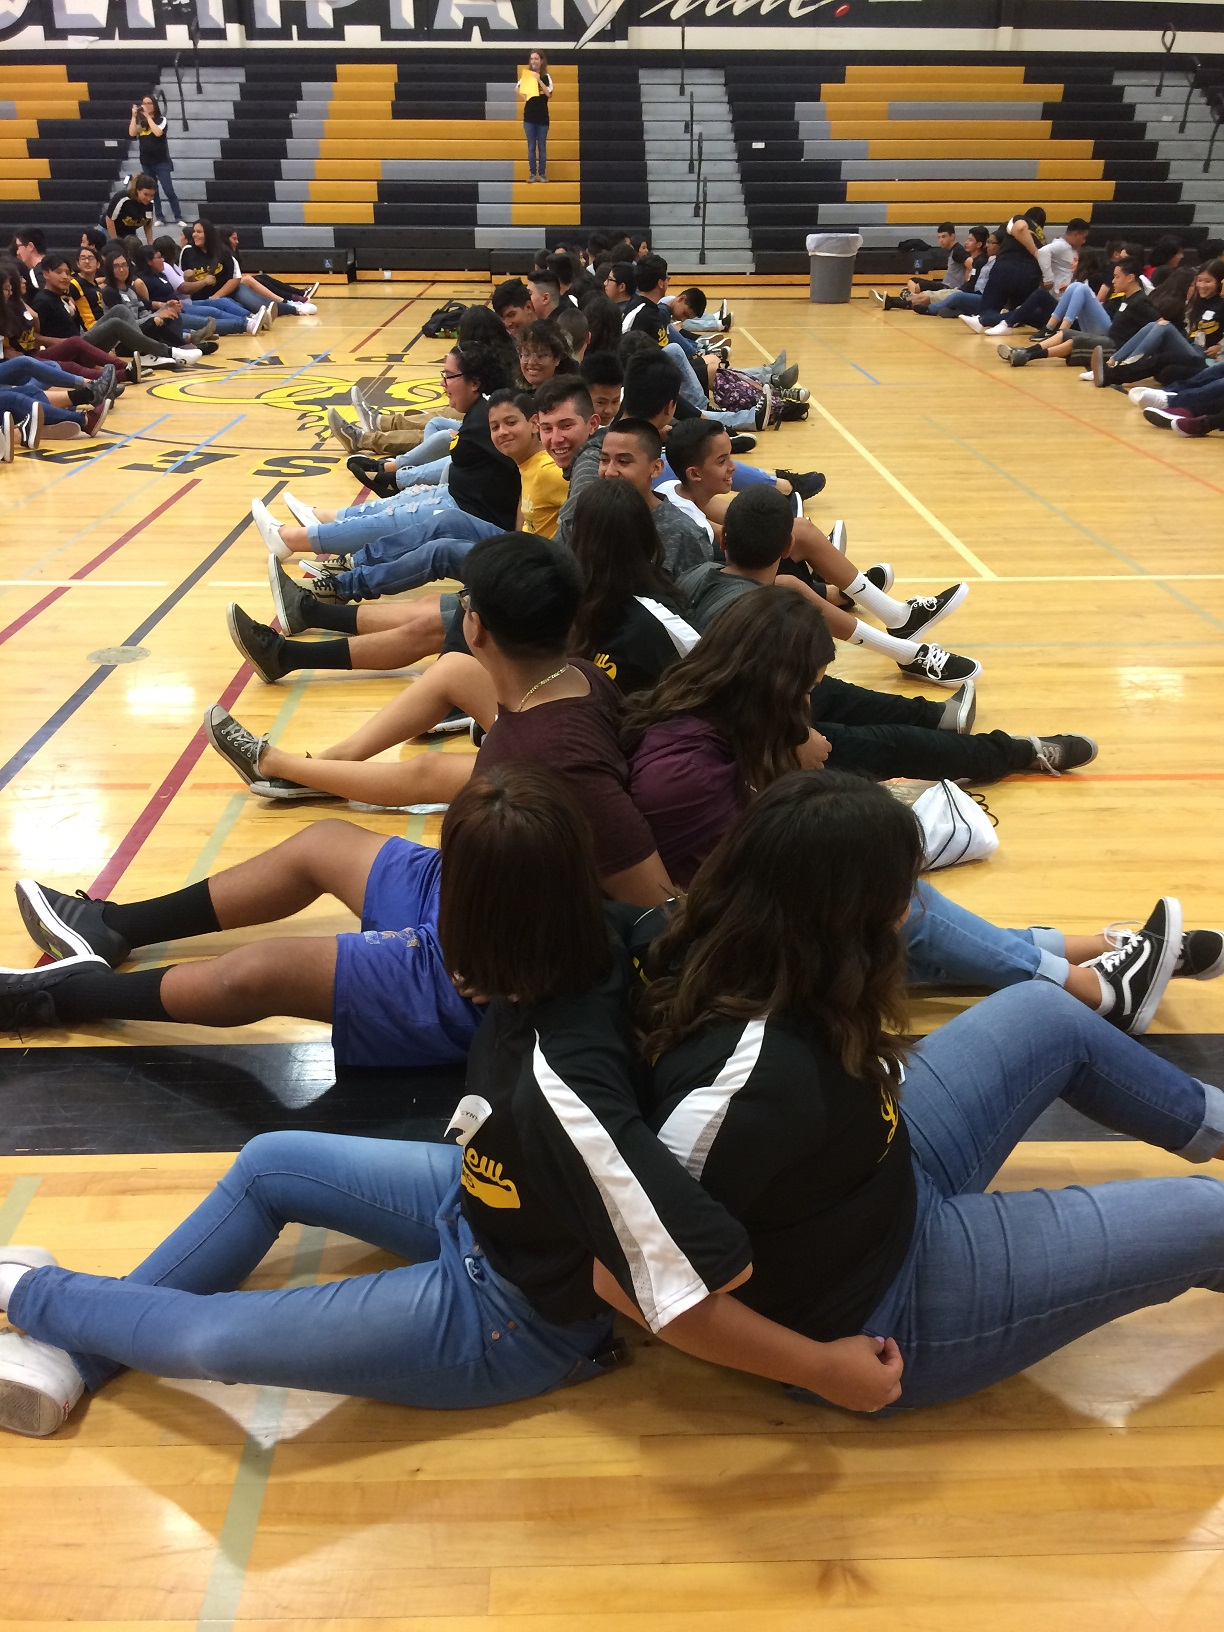 Right-click to download 082217_BASSETT_LINKCREW1